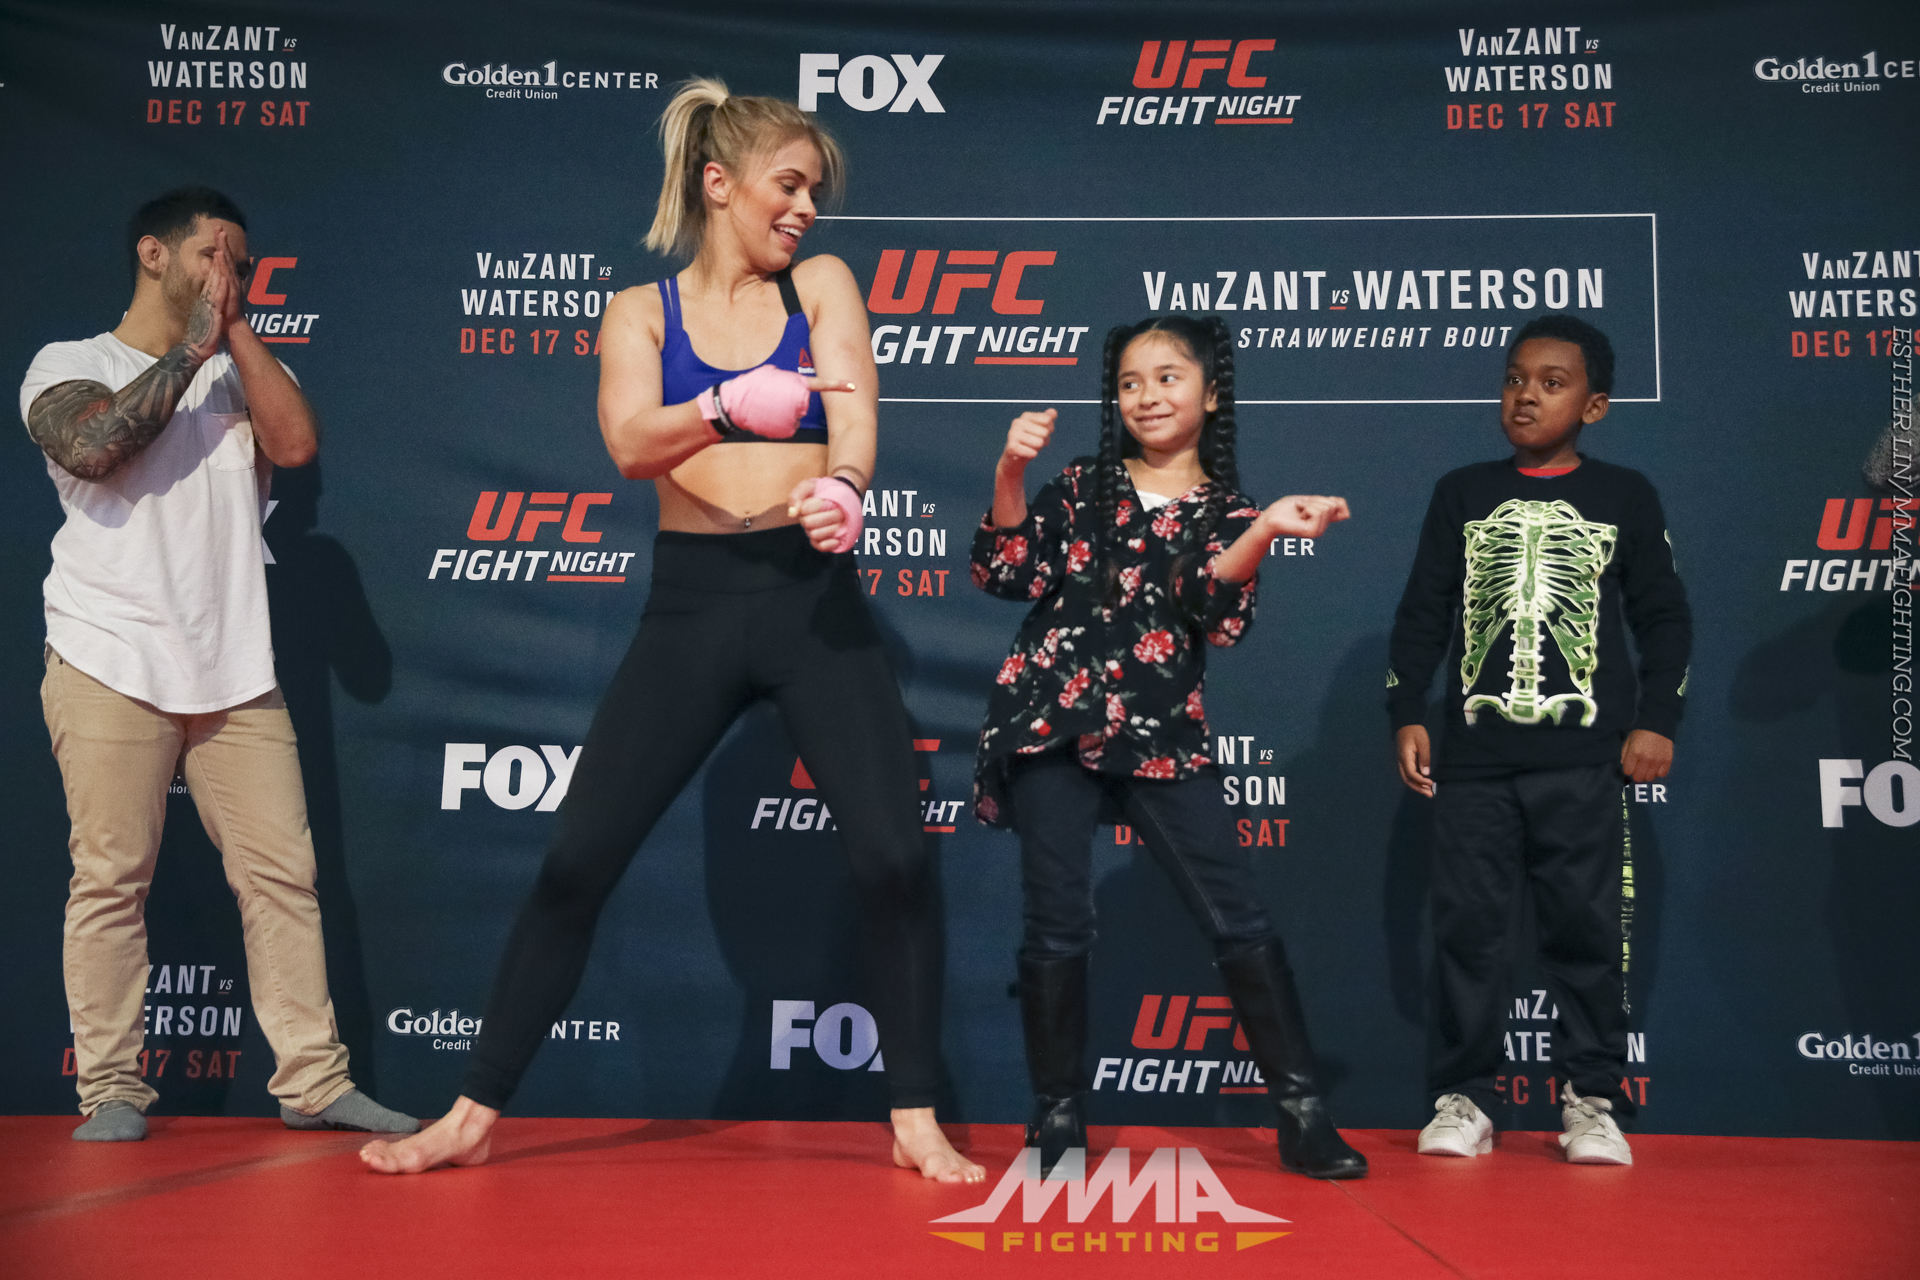 Ufc On Fox 22 Open Workout Photos Paige Vanzant And Fans Dance During The Workouts At Golden 1 Center In Sacramento Thurs Dec